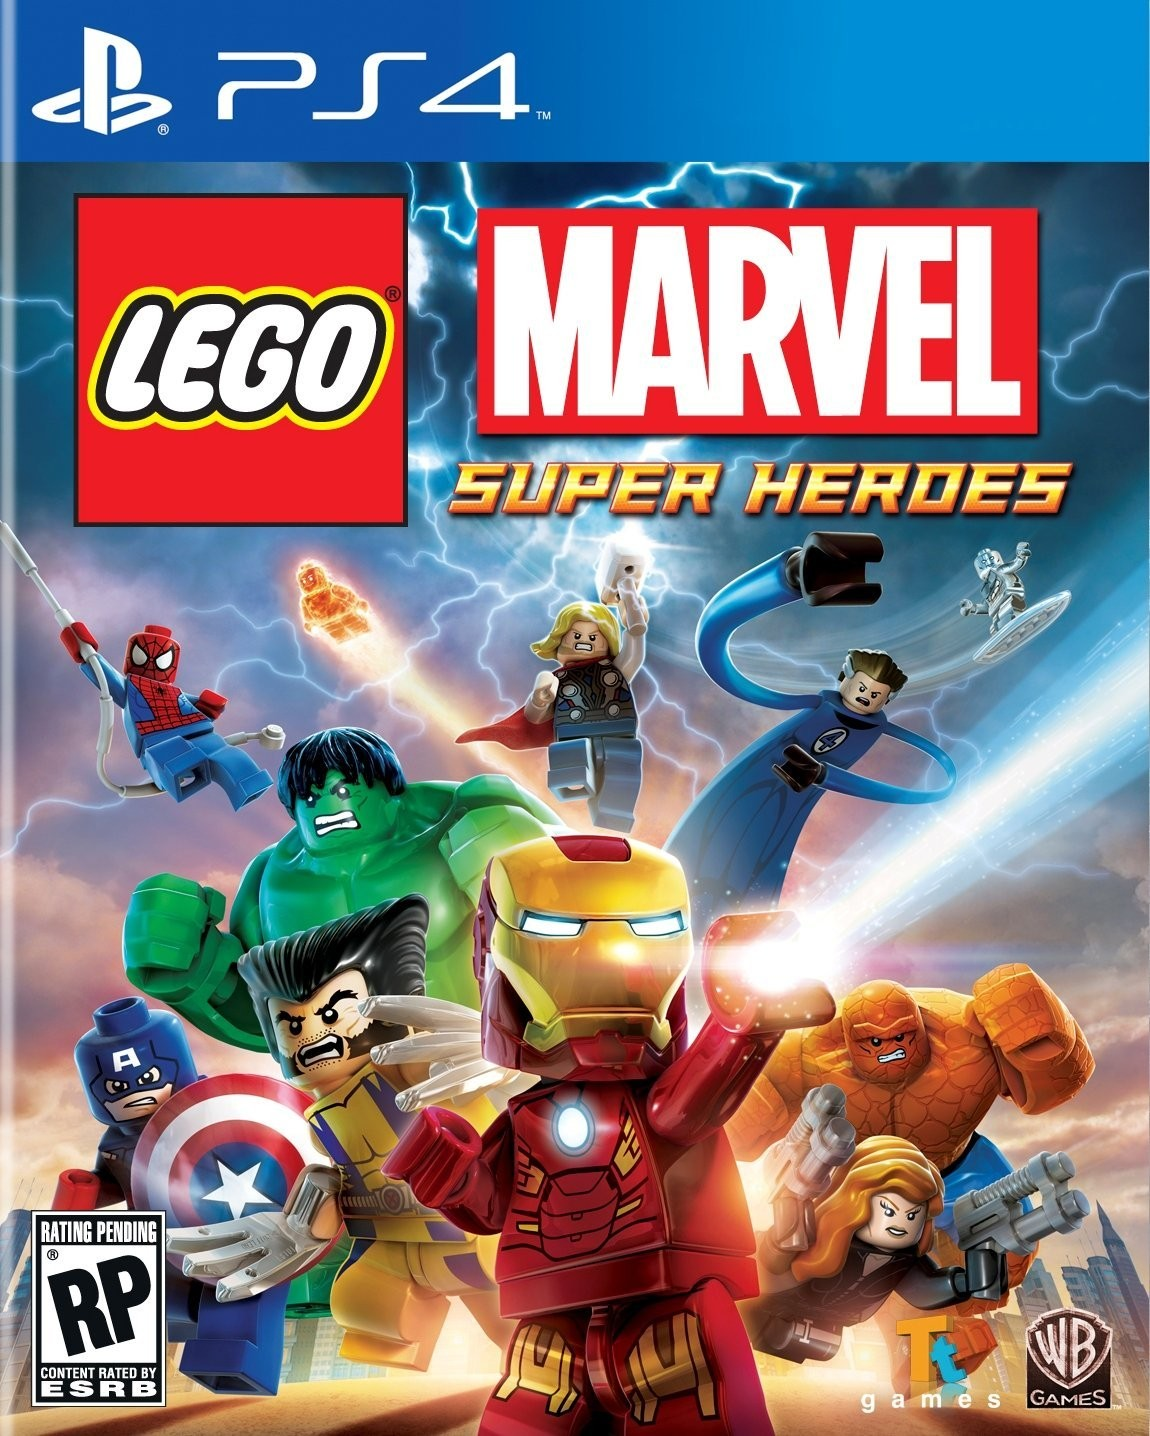 LEGO Marvel Super Heroes for Playstation 4 (R2)